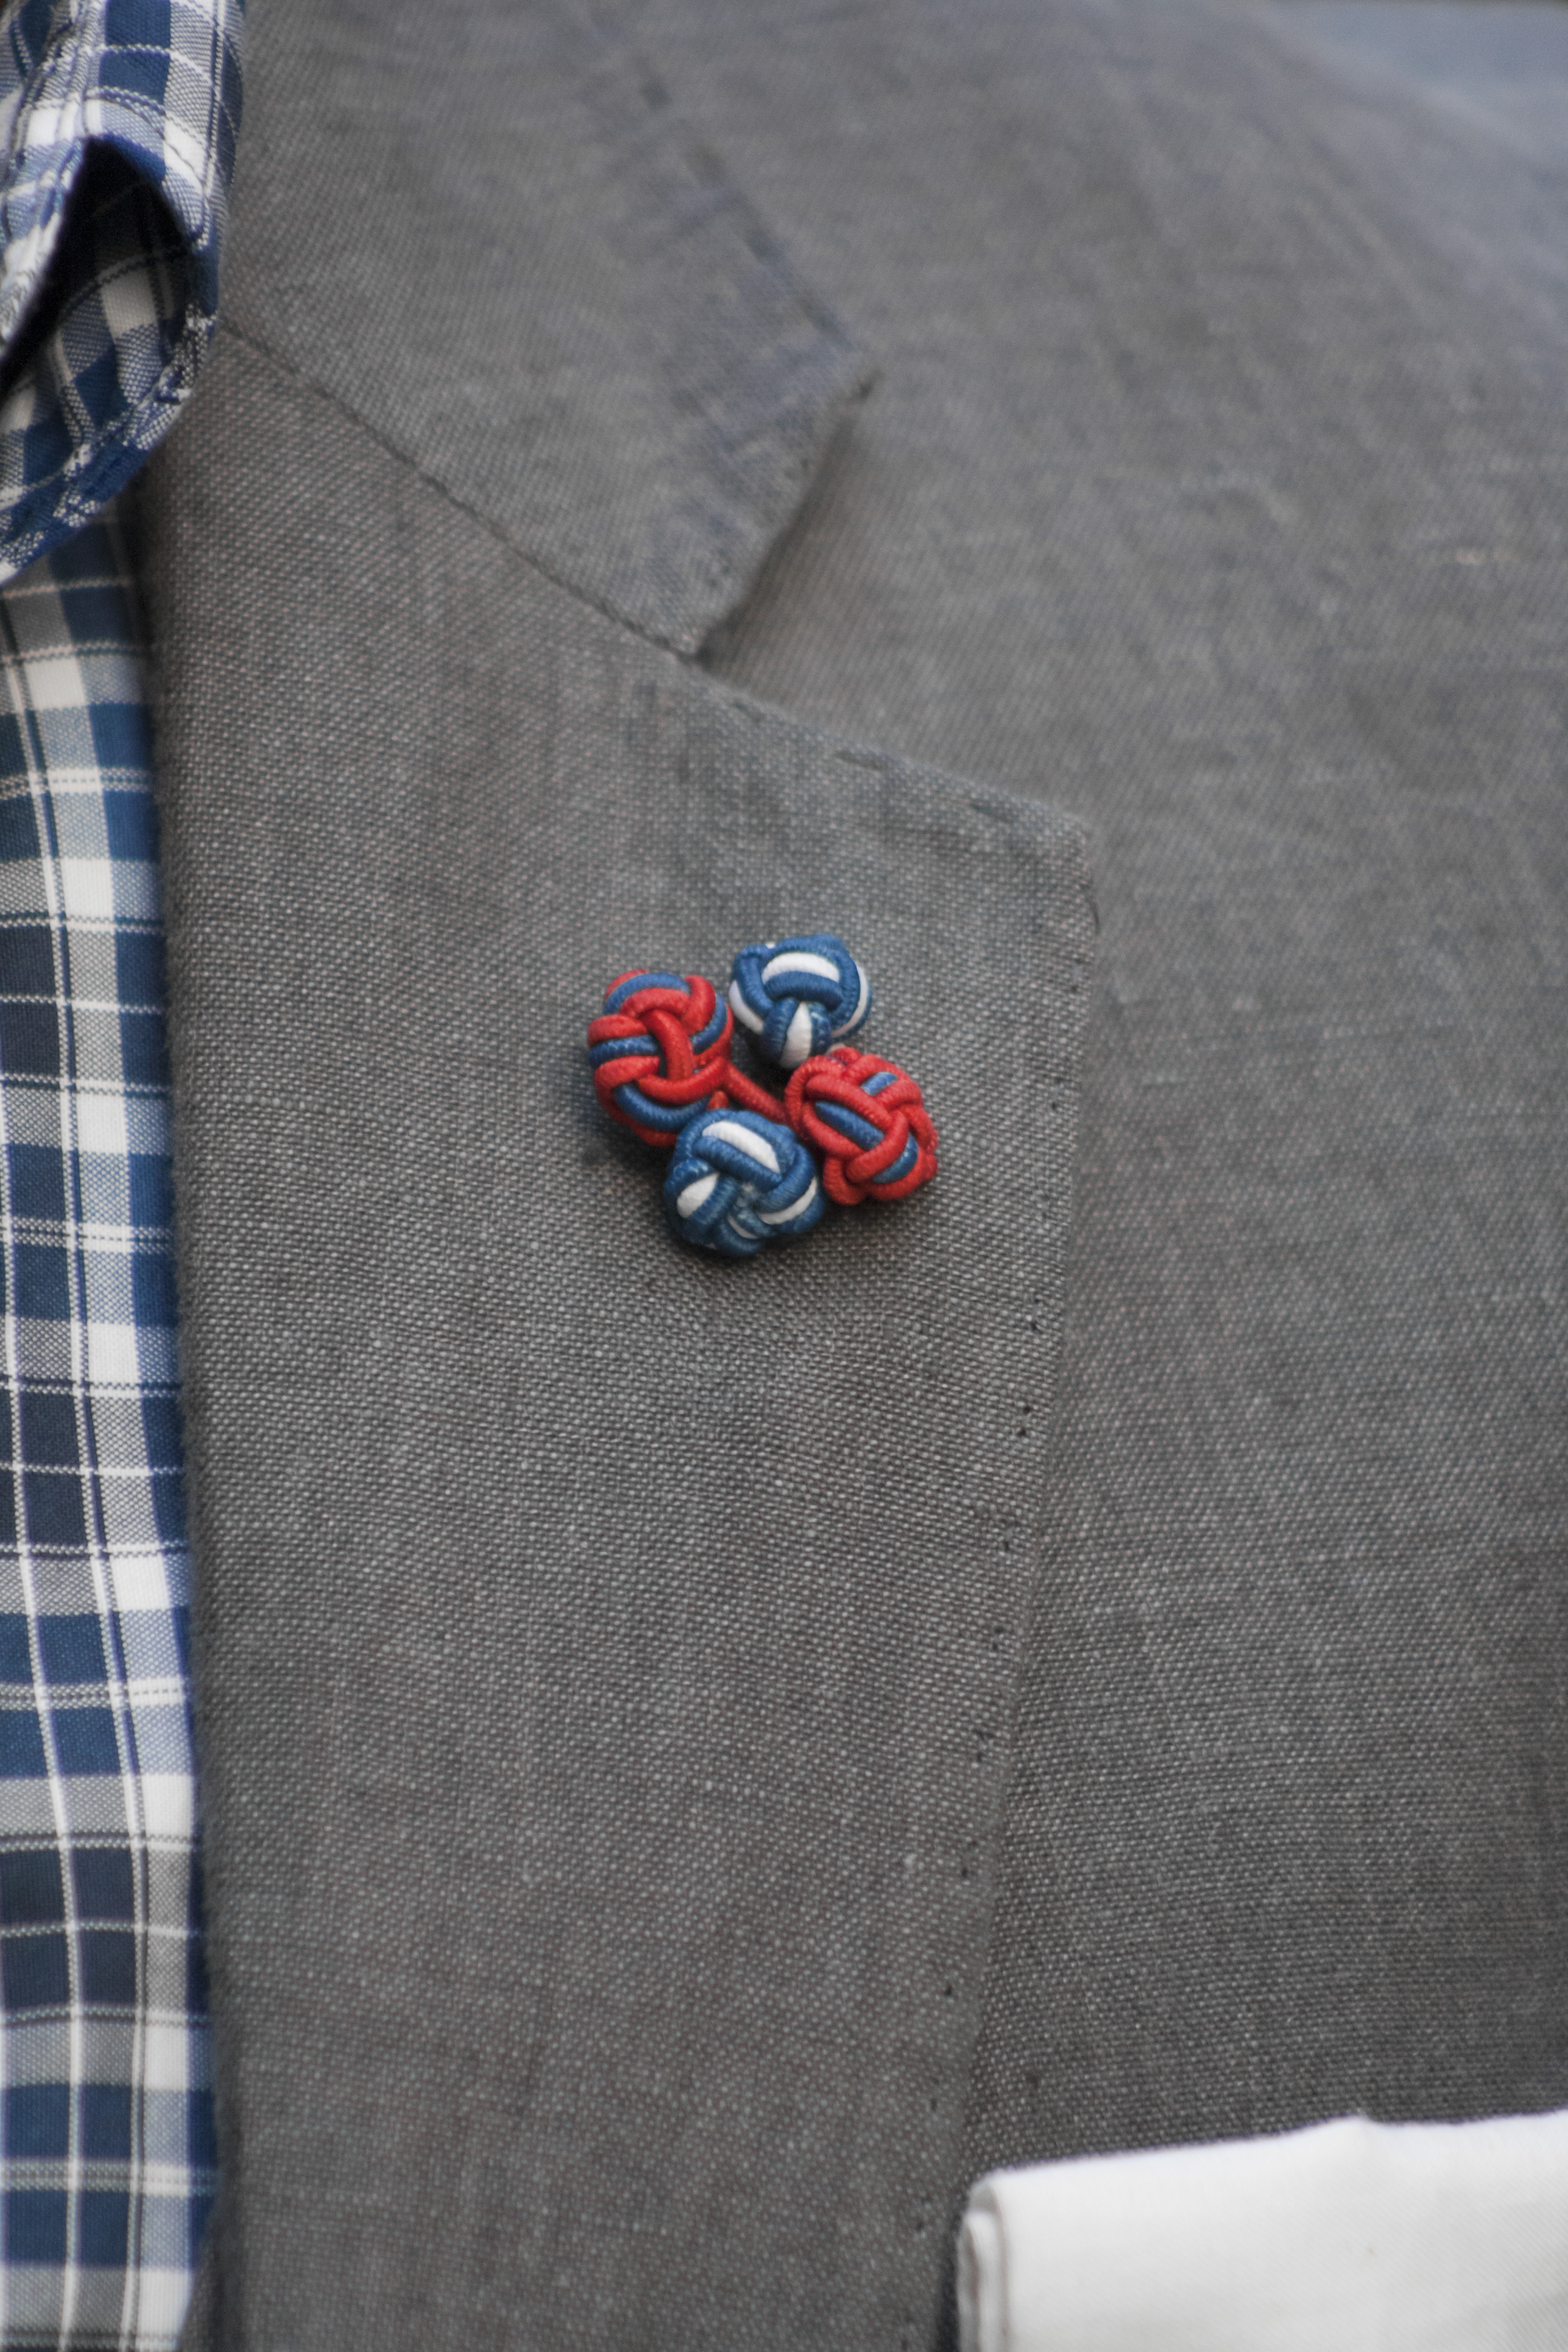 How To Video Making Silk Knot Lapel Flower Mens Style Pro